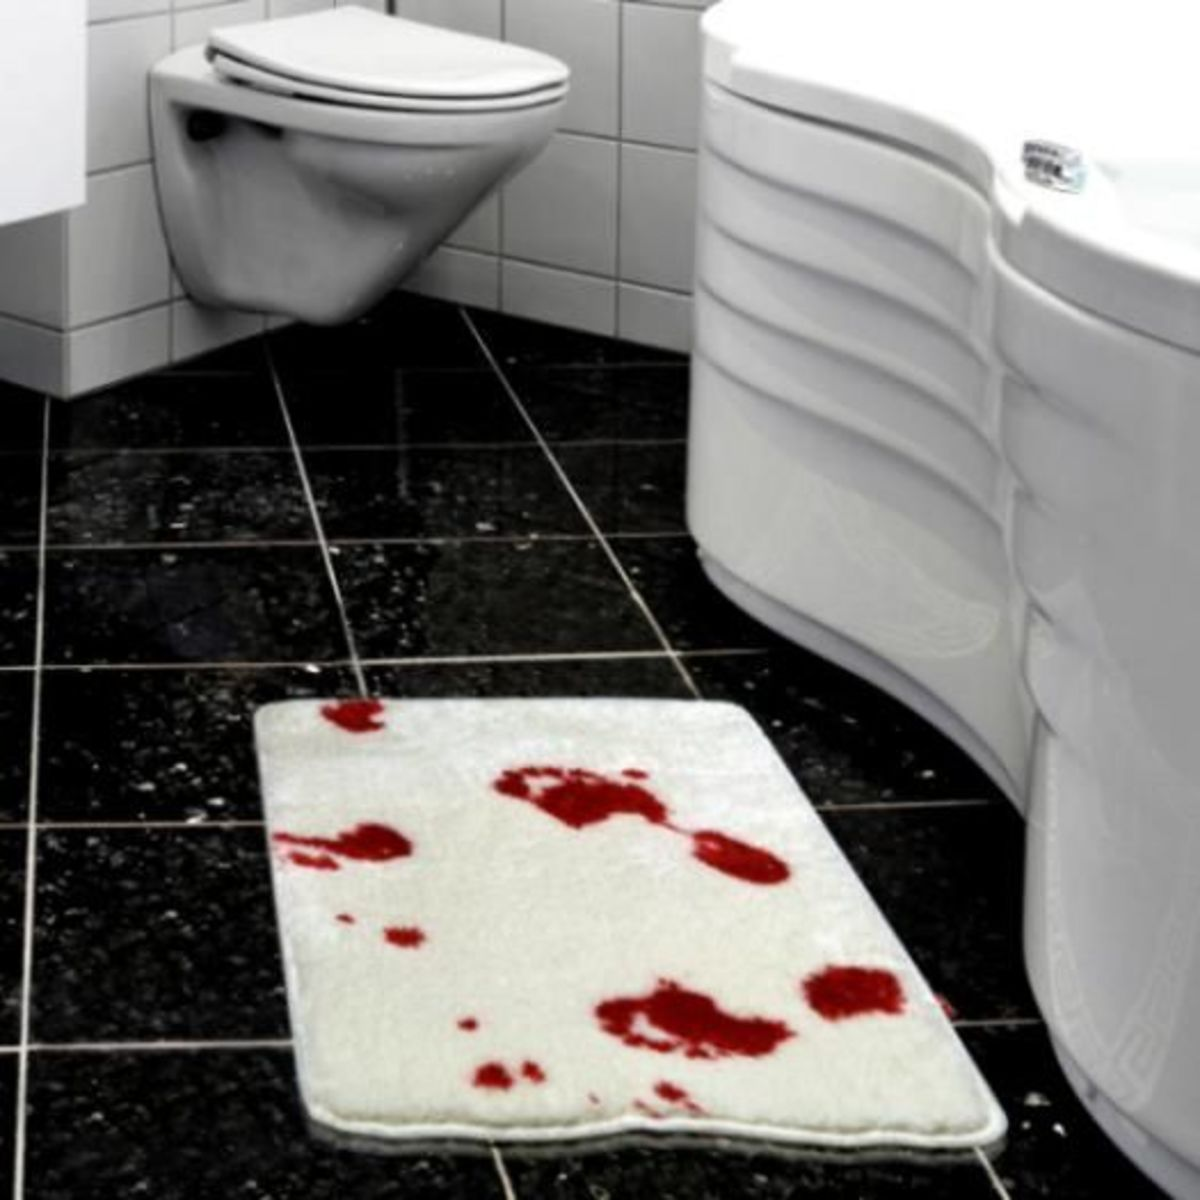 make a bloody bath mat towel or shower curtain bloody bath accessories sure to freak out your houseguests